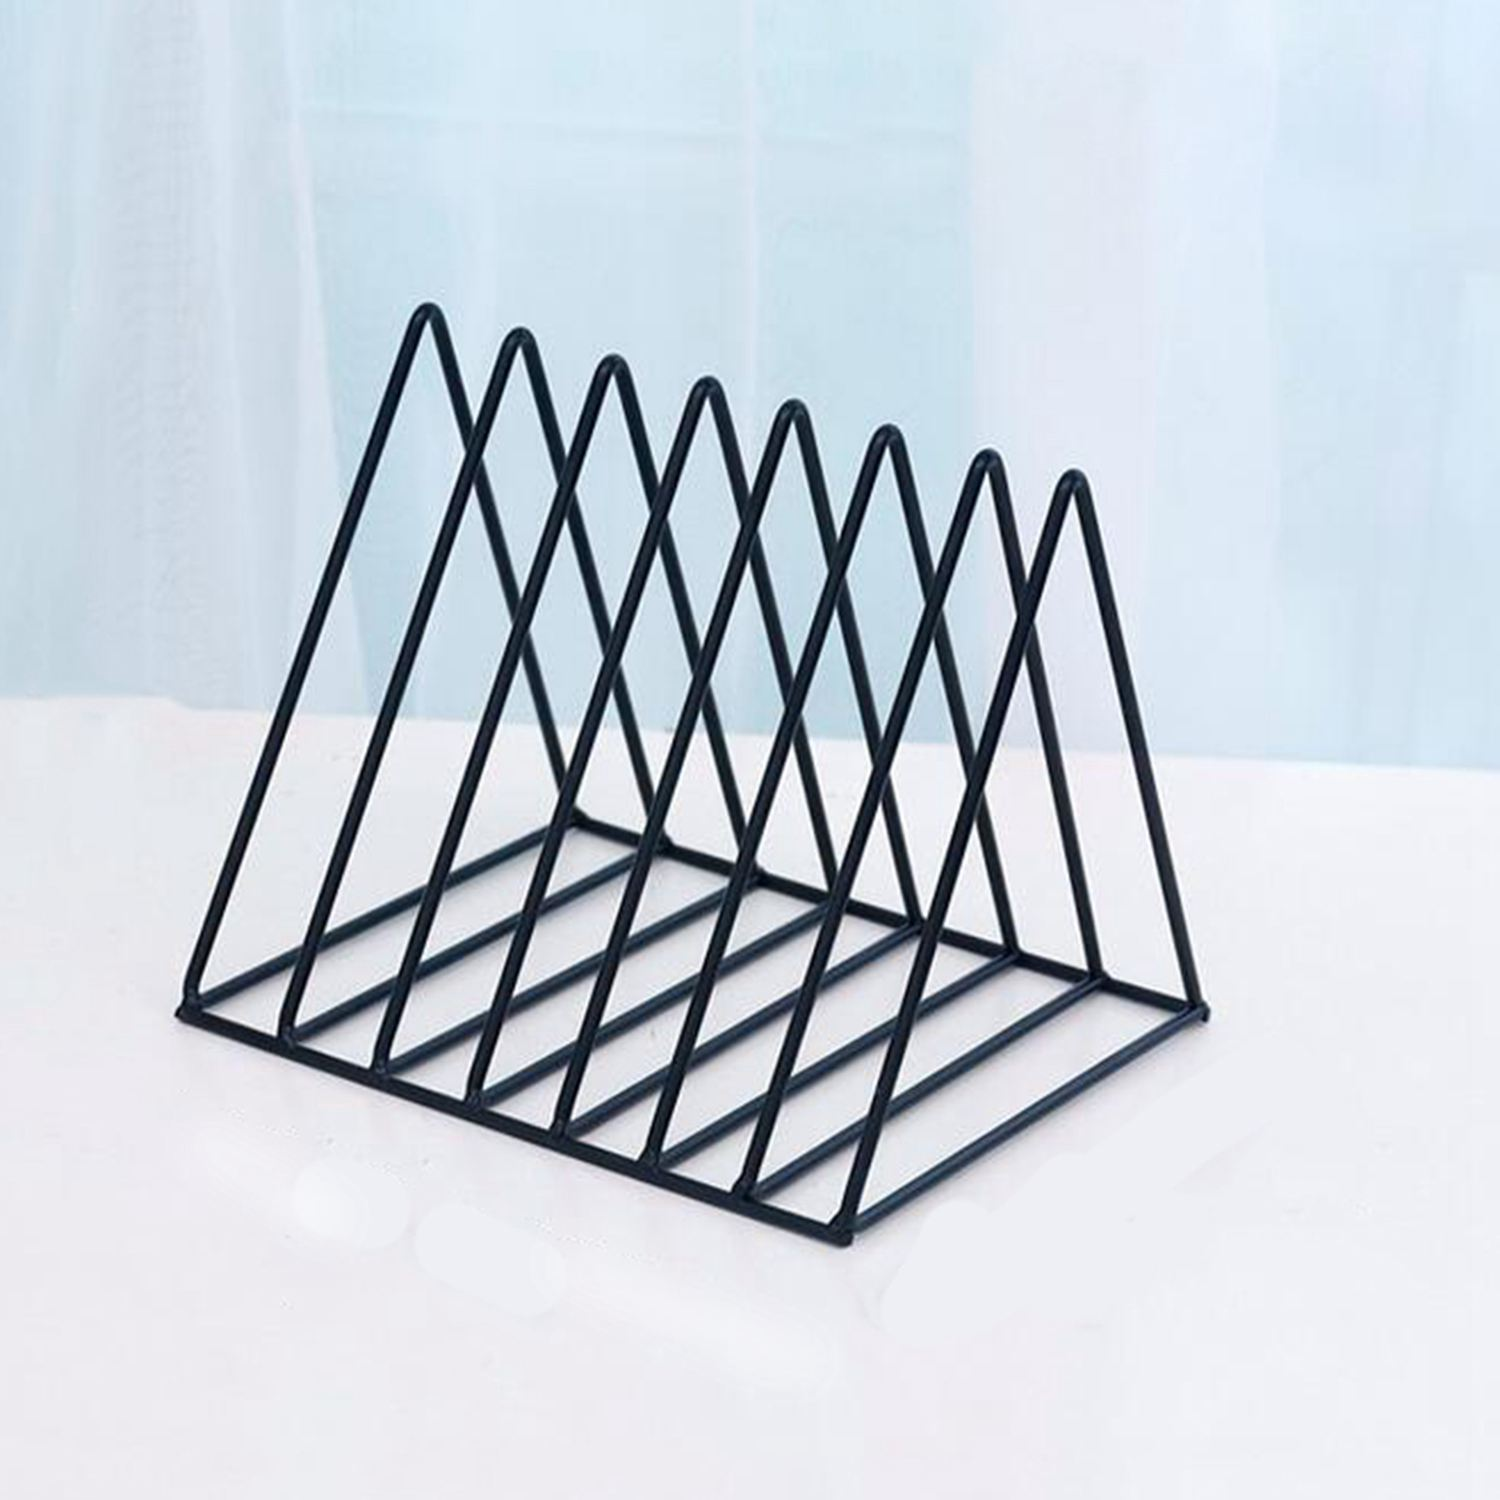 Nordic triangle simple wrought iron desktop storage rack shelf file magazine storage box office rack jewelryNordic triangle simple wrought iron desktop storage rack shelf file magazine storage box office rack jewelry